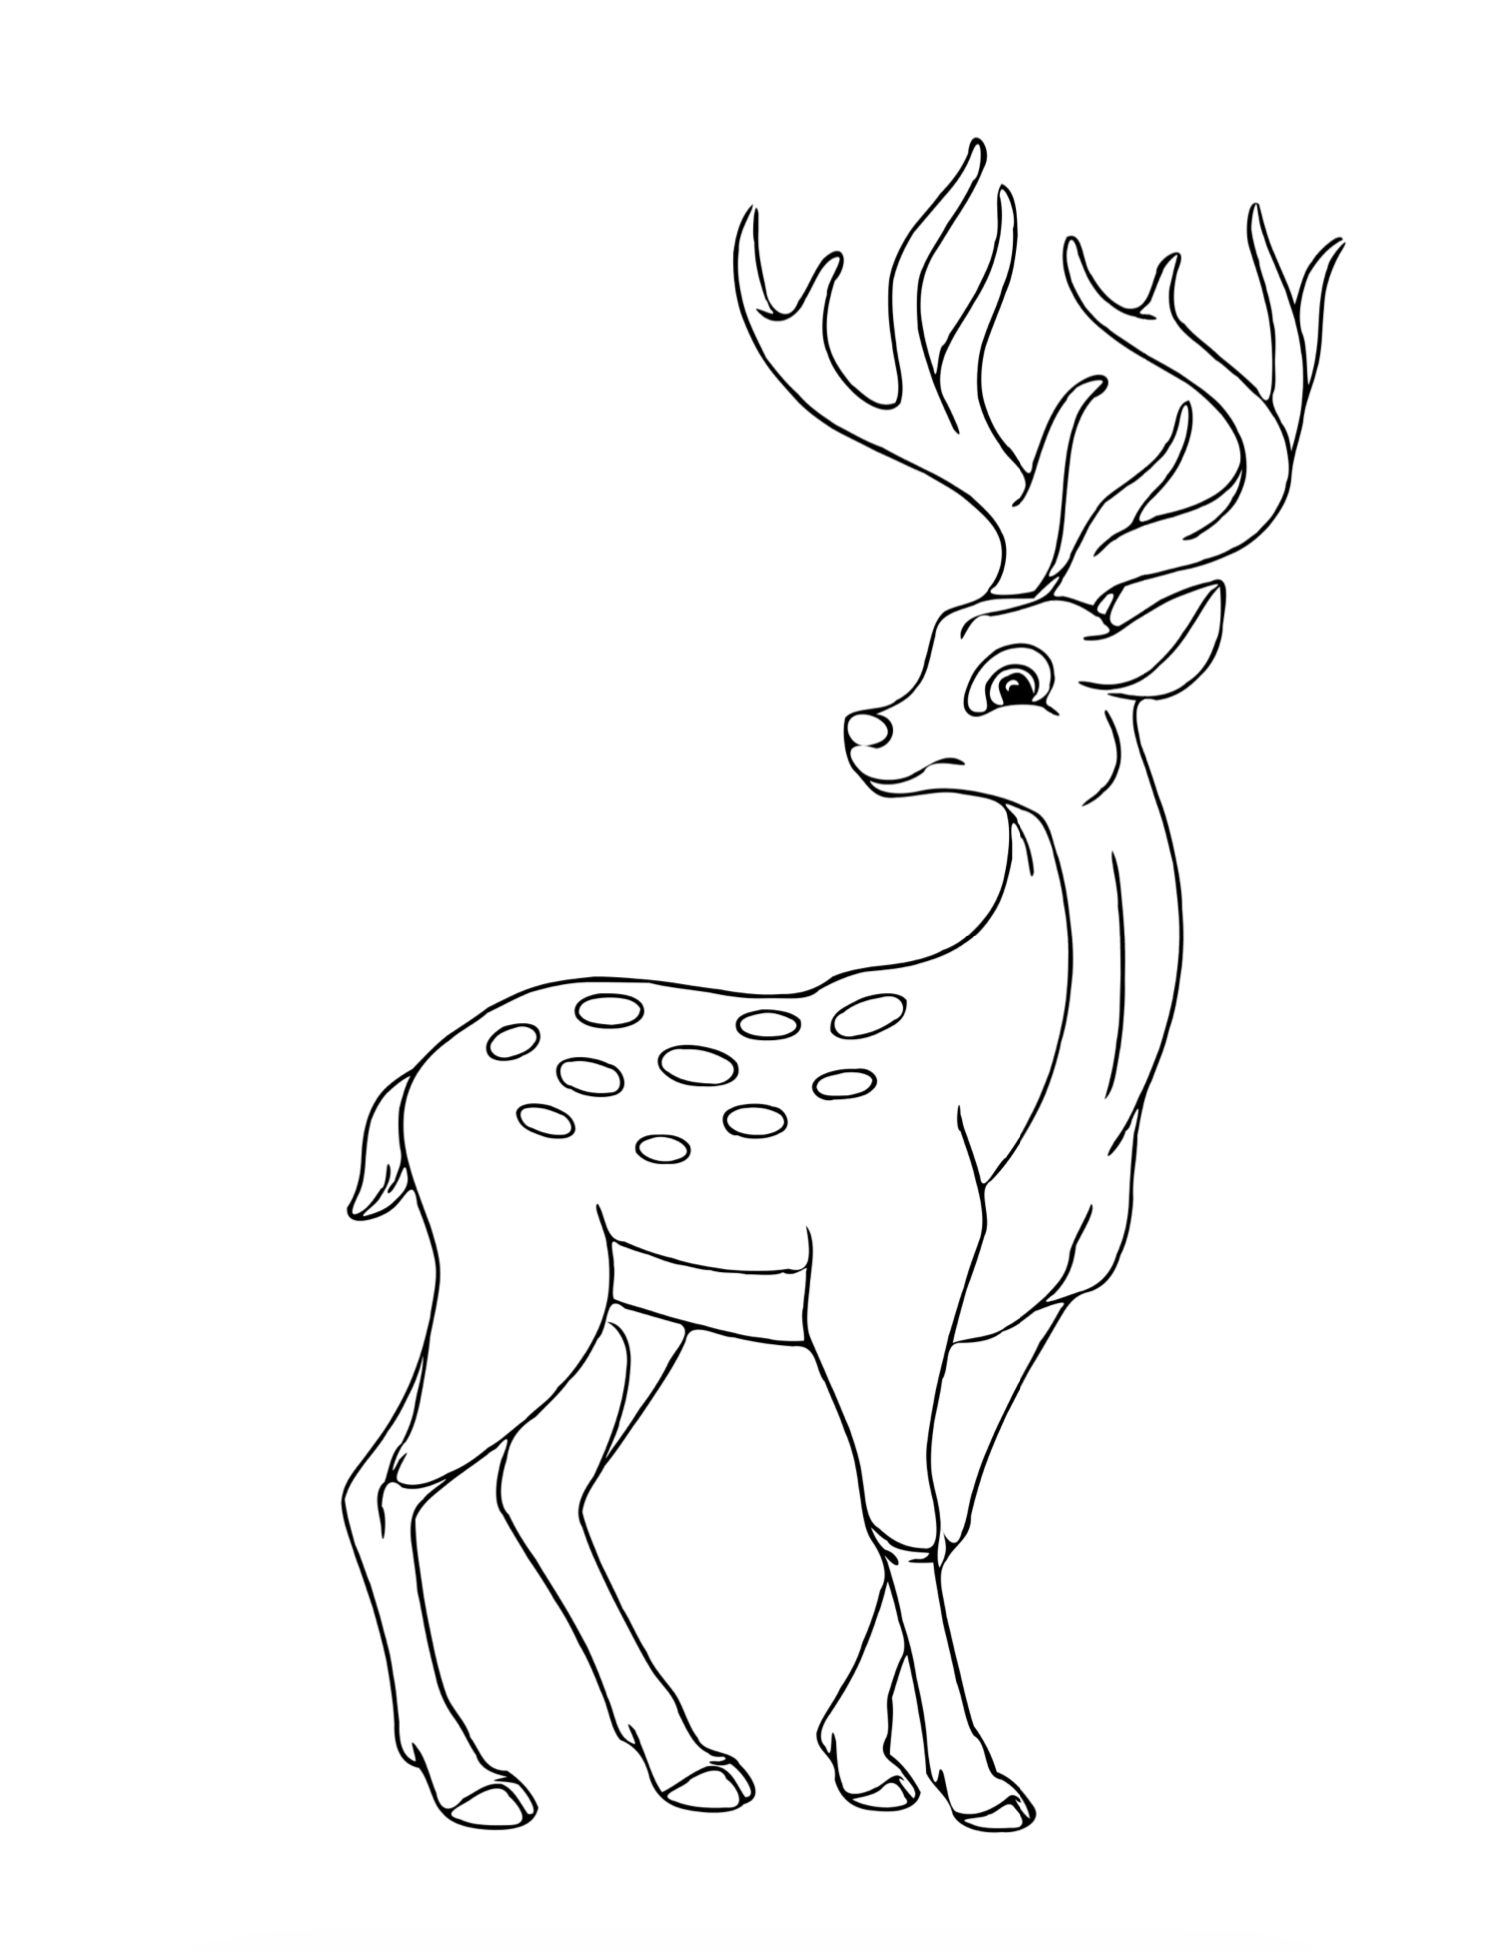 30 animal coloring pages for kids resell right